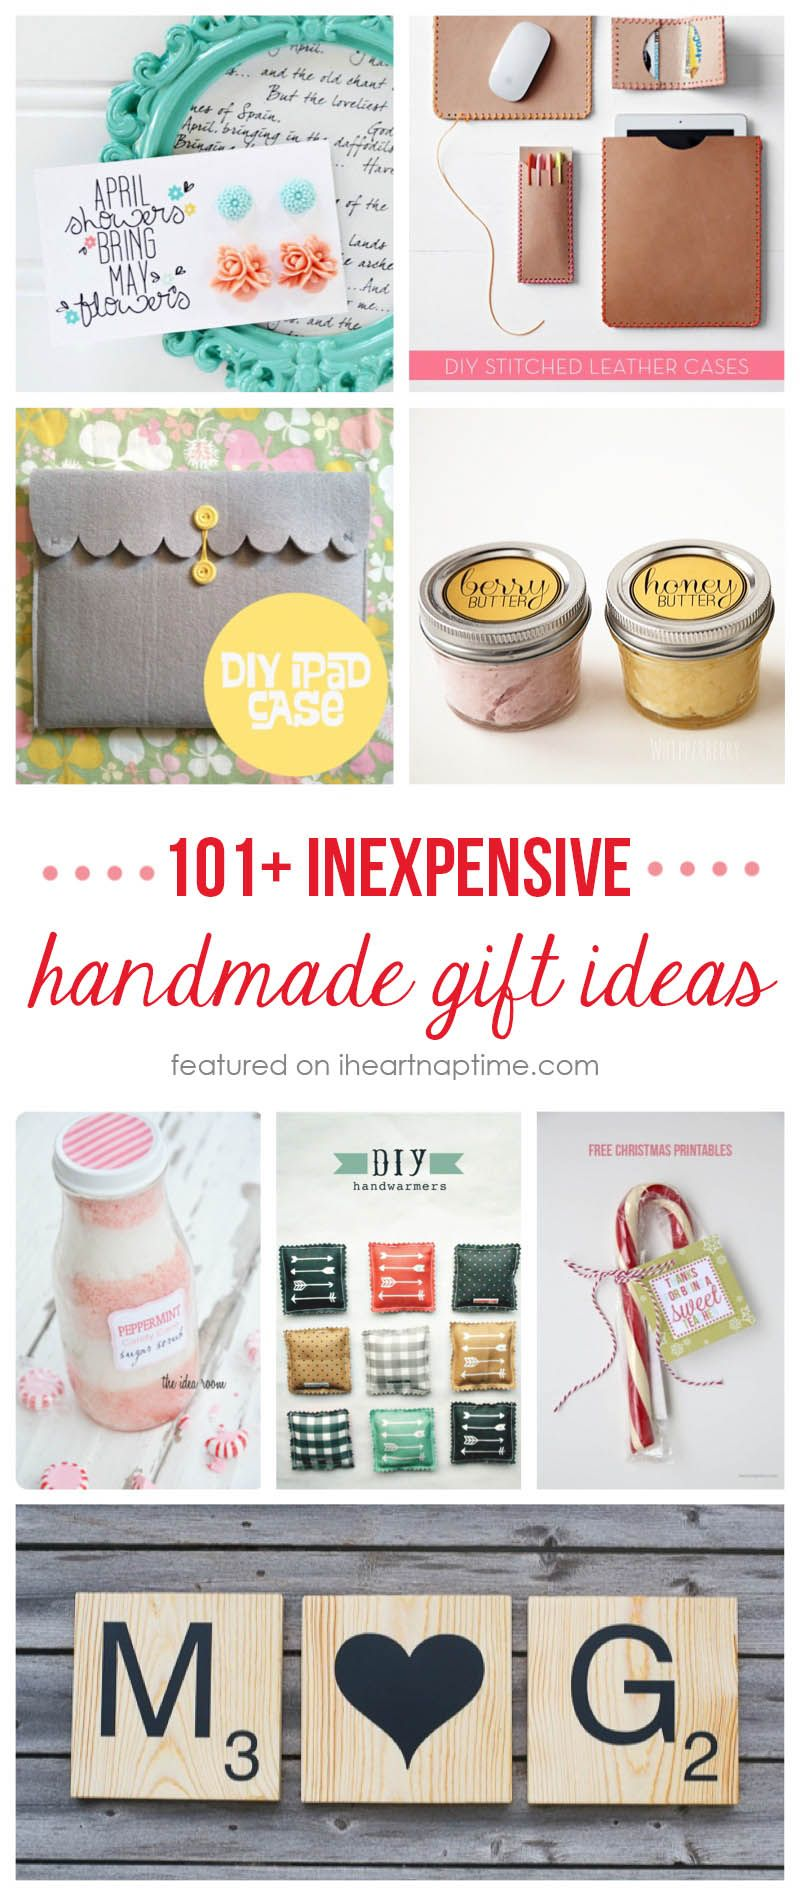 101+ inexpensive handmade Christmas gifts on iheartnaptime.net ...